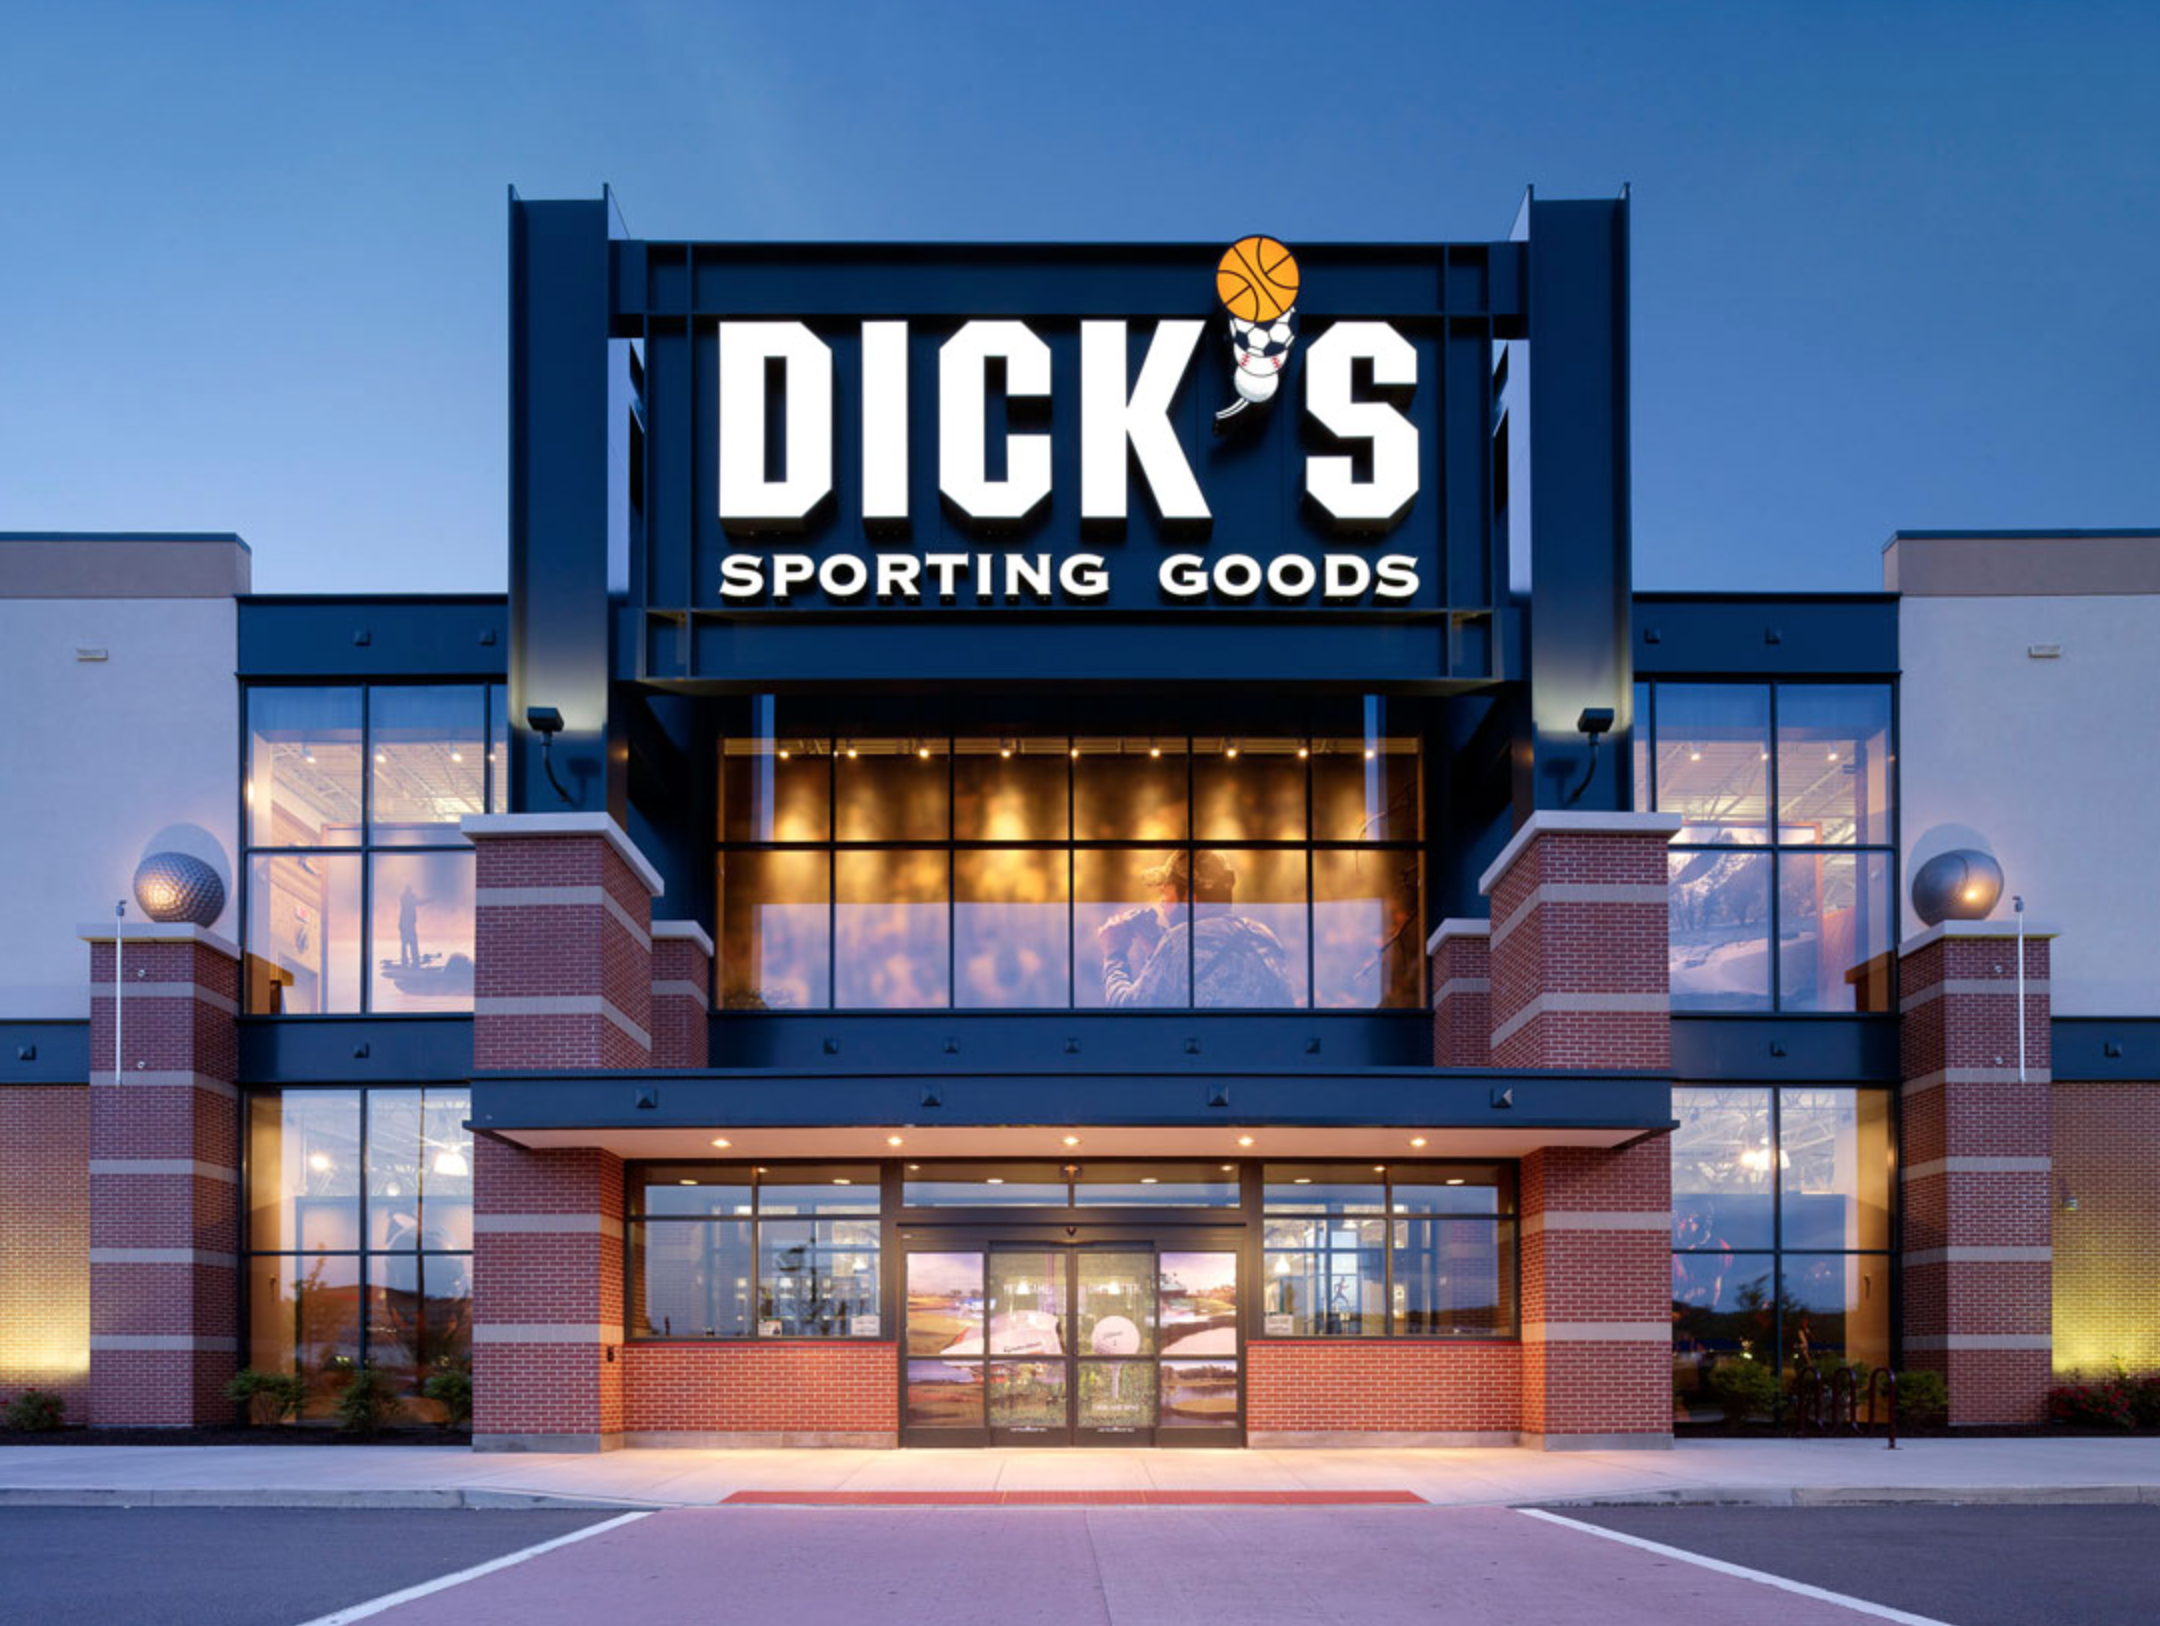 Dick's Sporting Goods Free Shipping Policy Dick's Sporting Goods offer free ground shipping on orders over $ About Dick's Sporting Goods Dick's Sporting Goods is a seasonal retailer, offering the finest quality products at competitive prices and backed by the best service anywhere.